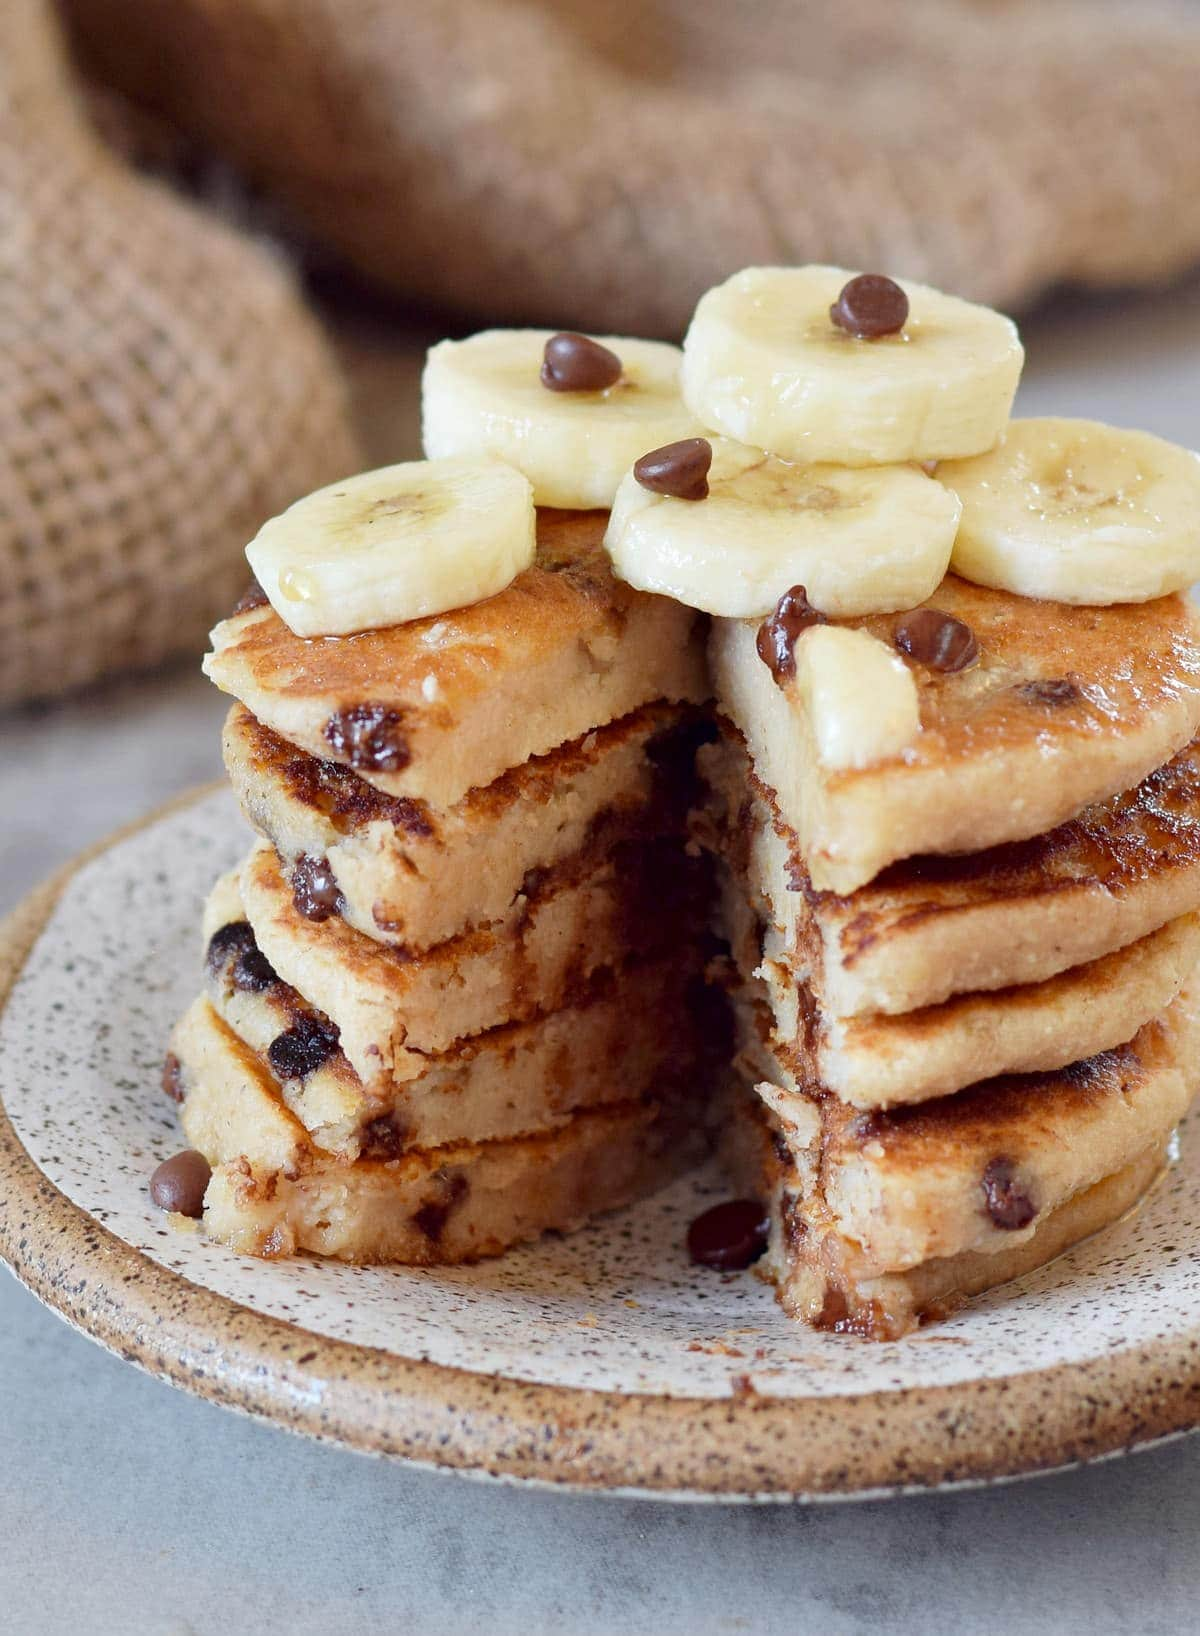 gluten-free pancake stack with banana slices